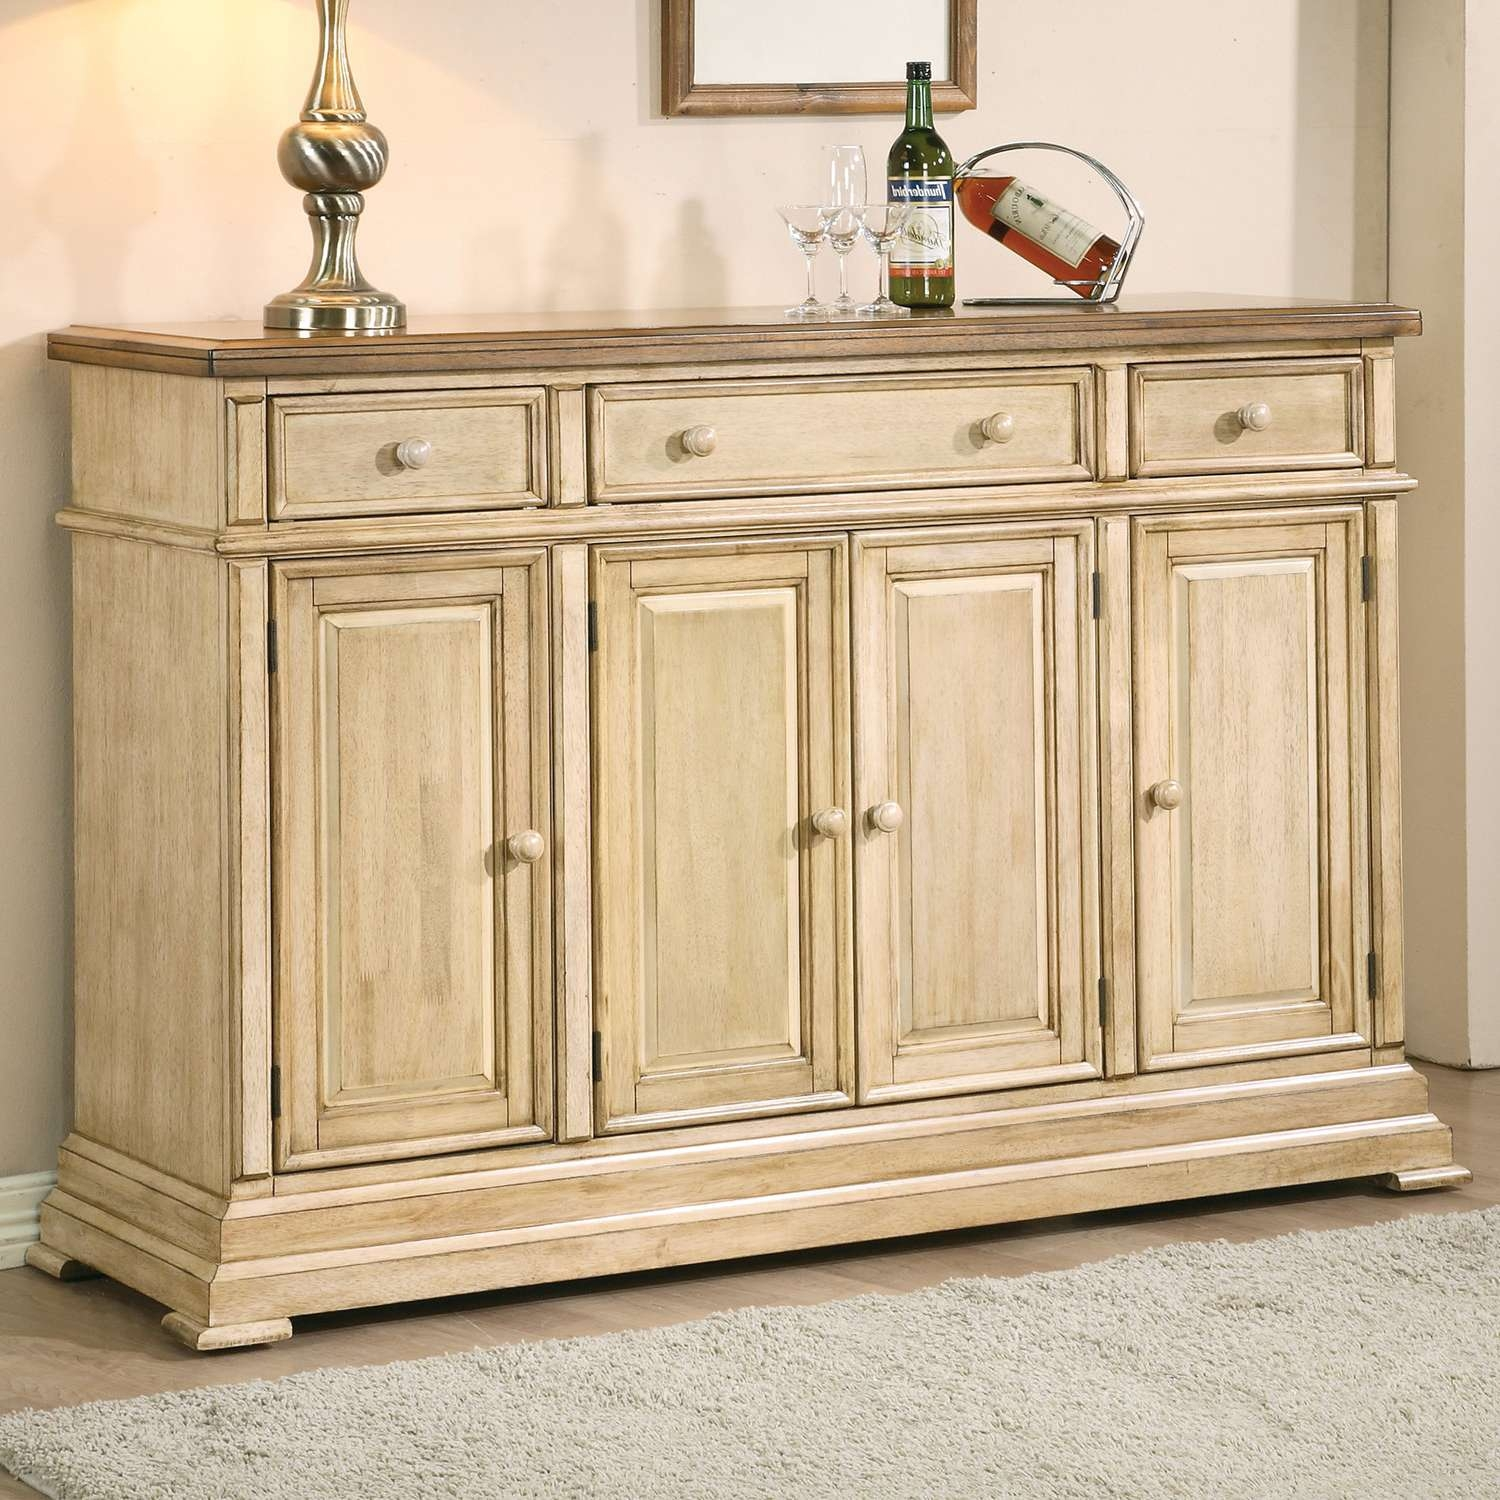 Best Of White Buffet Sideboard – Bjdgjy Intended For Wooden Sideboards And Buffets (View 7 of 20)